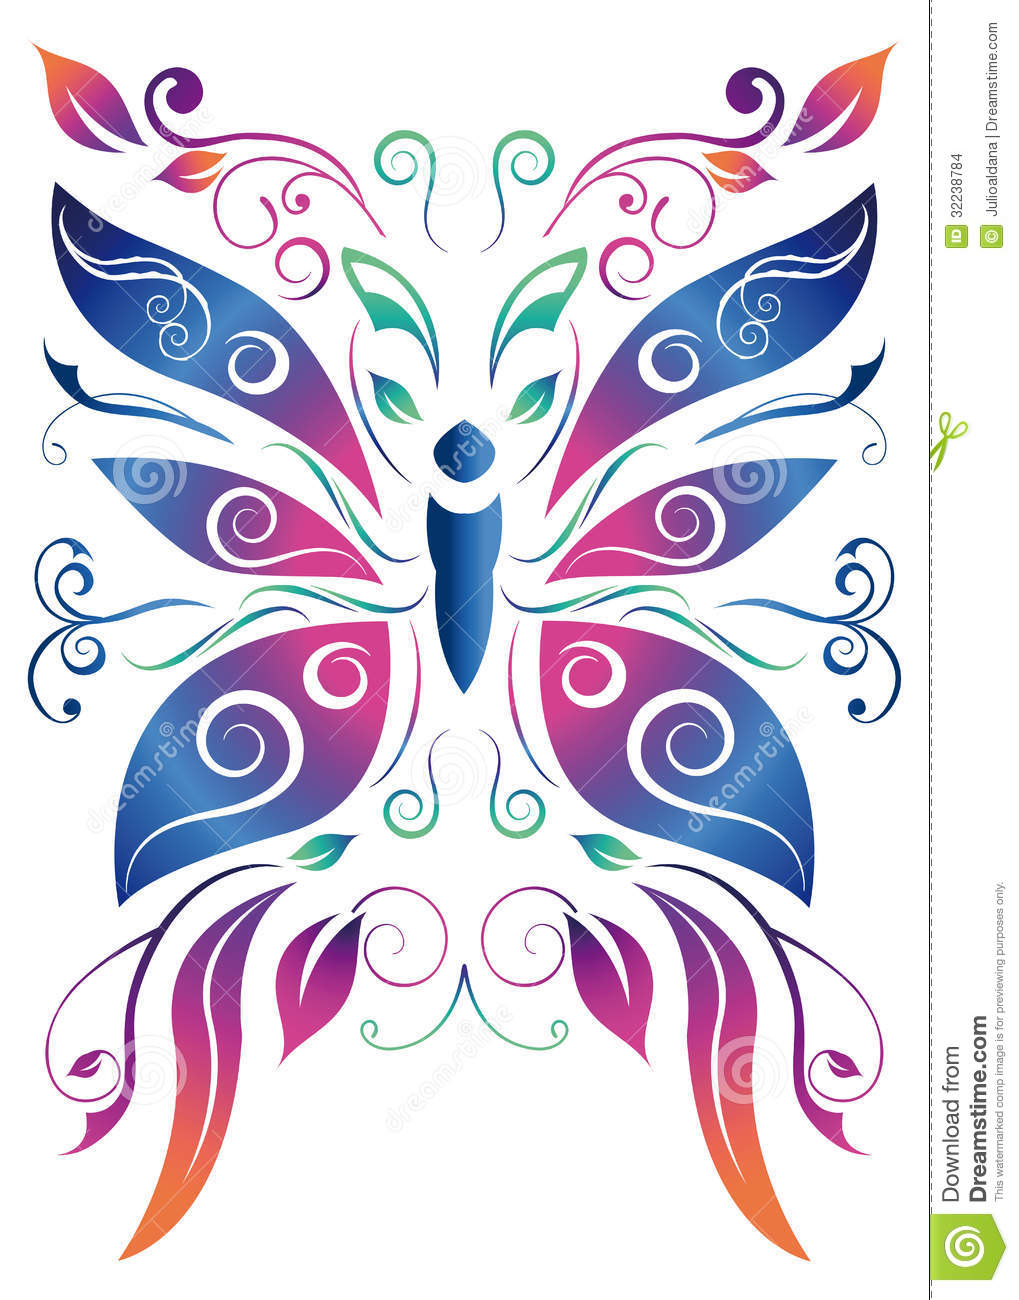 Insect PNG Images  Vectors and PSD Files  Free   Pngtree